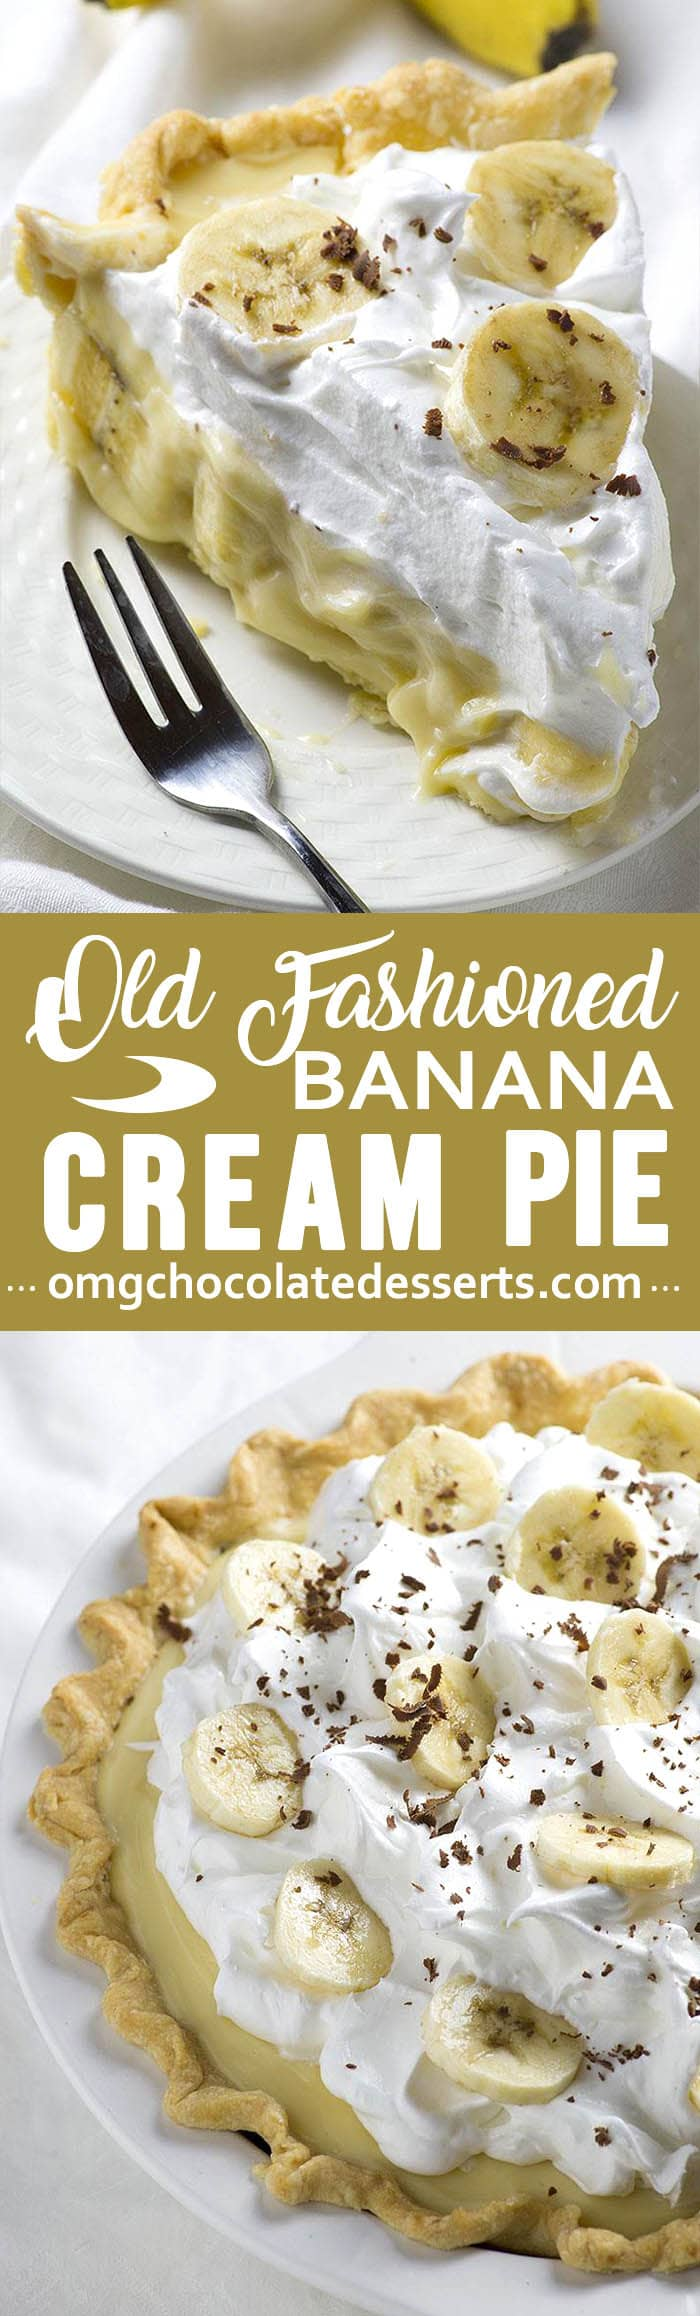 This homemade banana cream pie is phenomenal. The crust is buttery, the filling is luscious, and the bananas are beautifully tender.